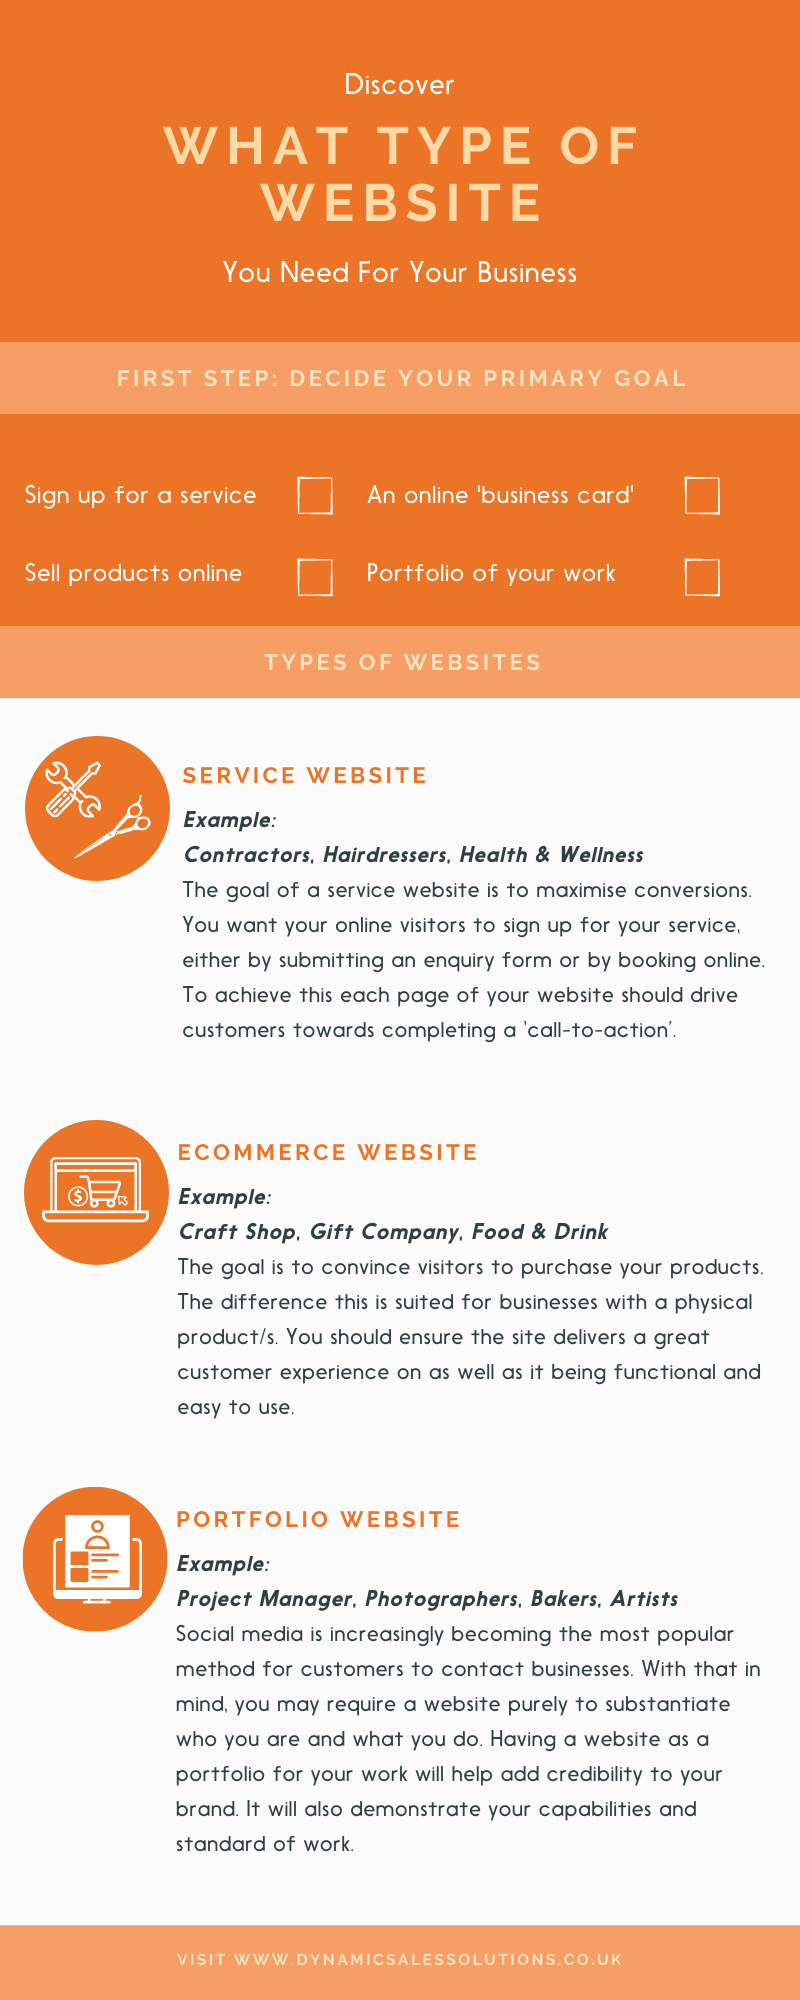 Type of website for business